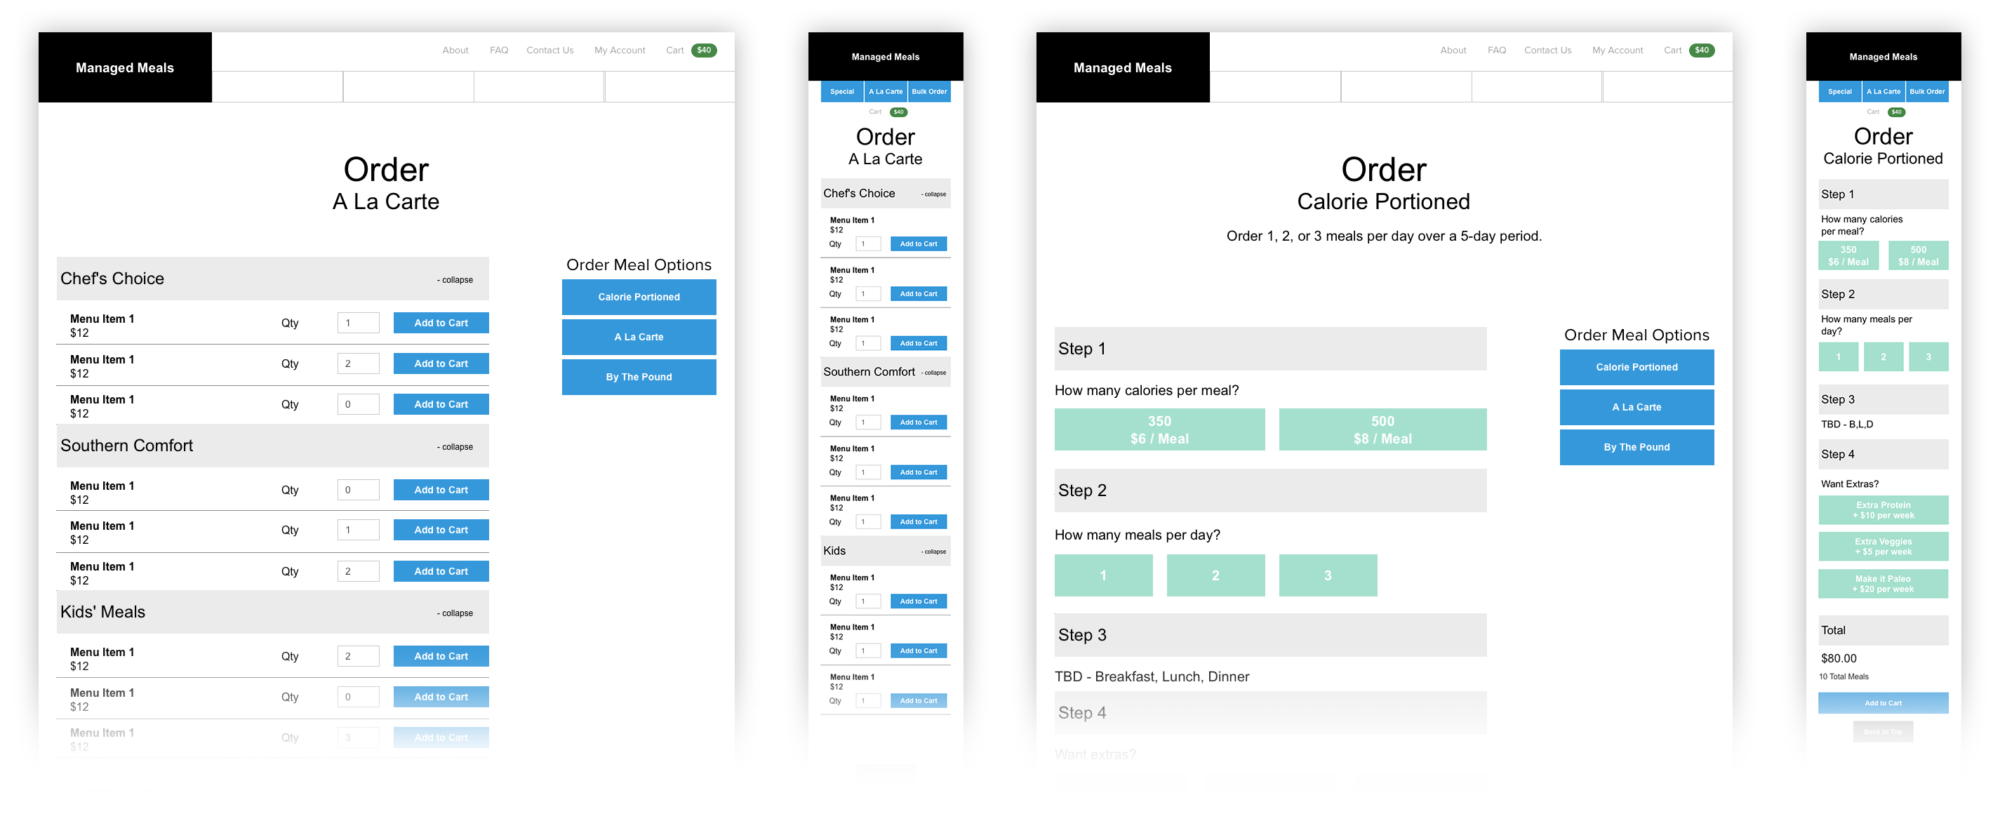 Managed Meals Wireframes